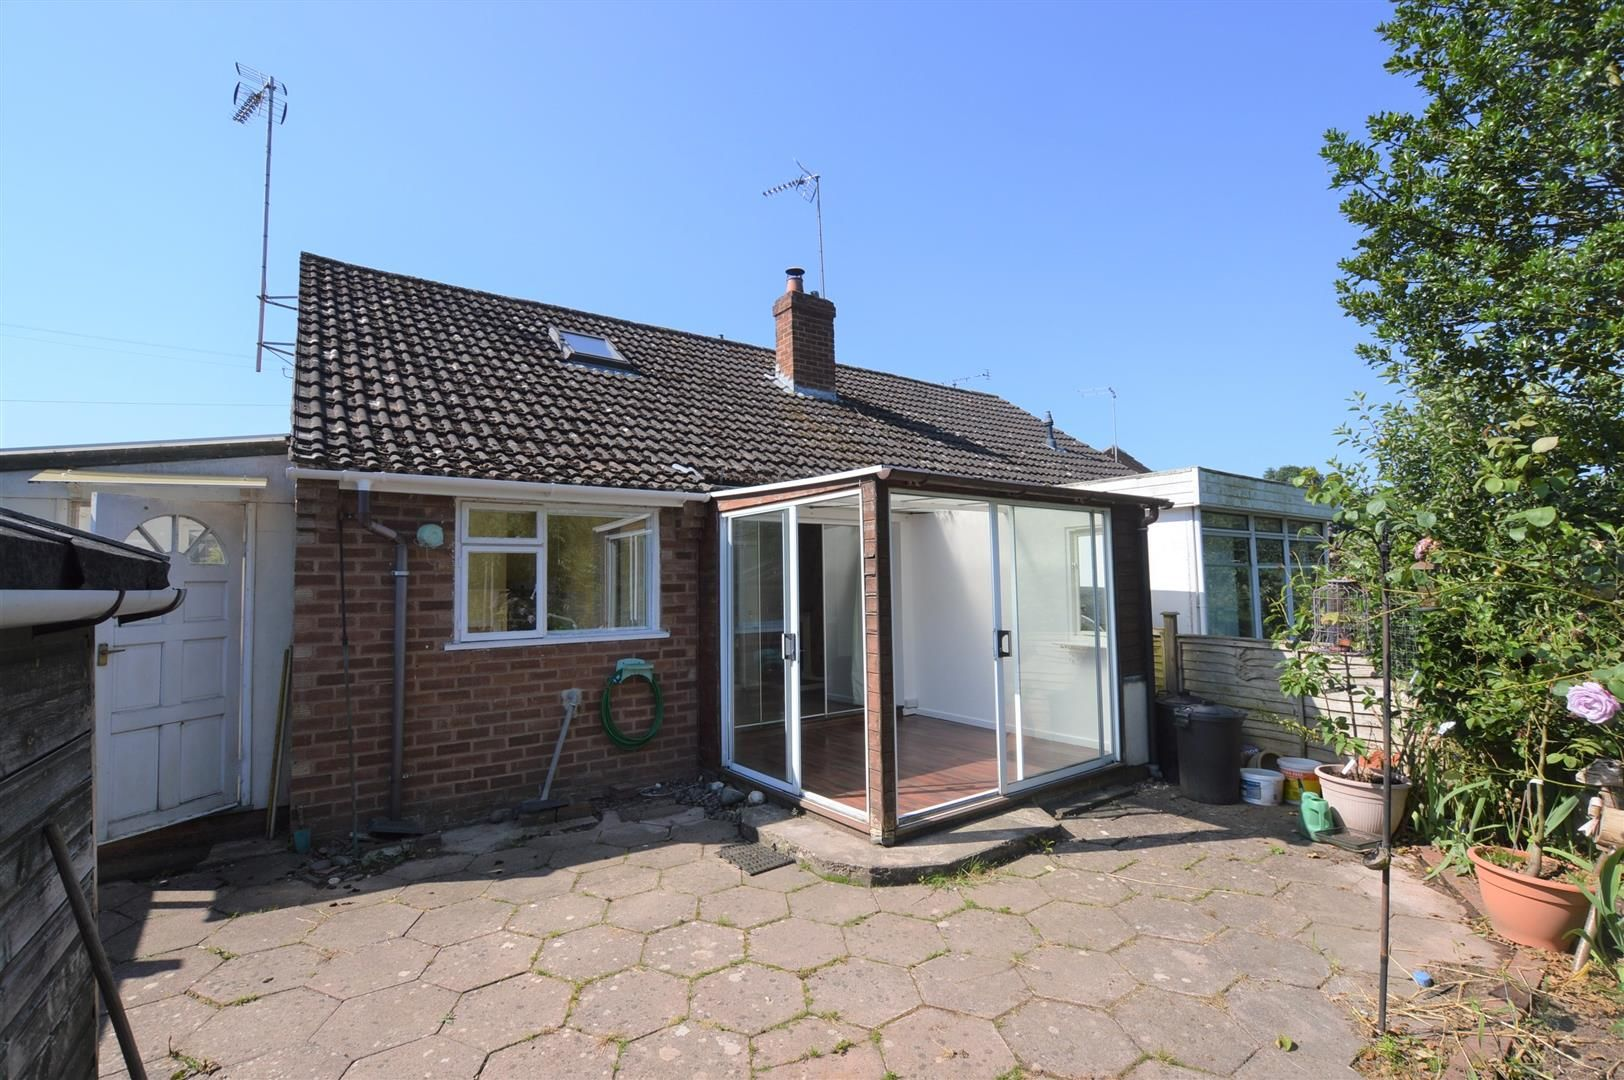 2 bed semi-detached-bungalow for sale in Leominster  - Property Image 14